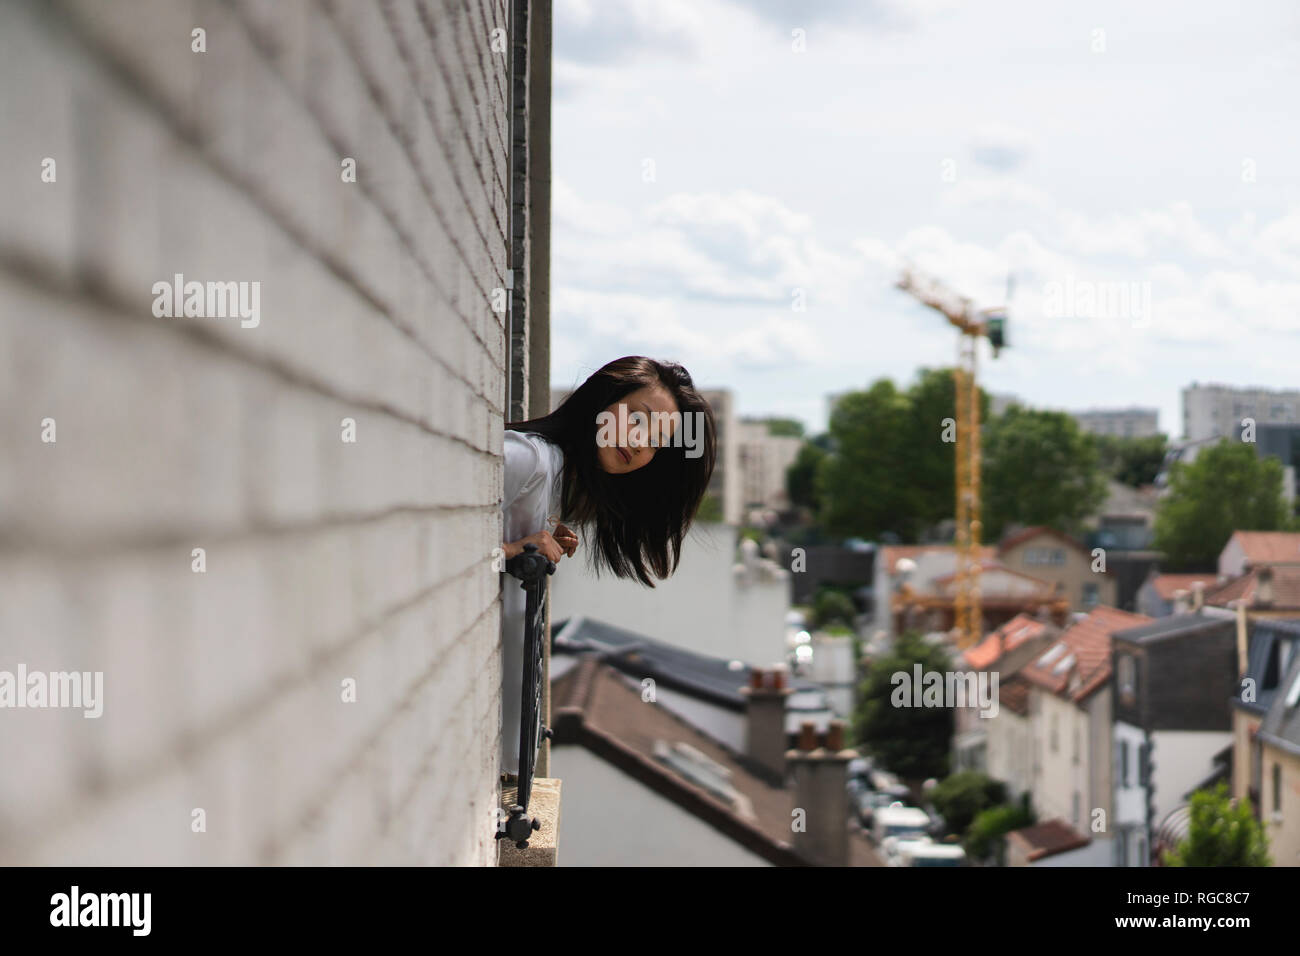 France, Paris, young woman looking out of the window - Stock Image